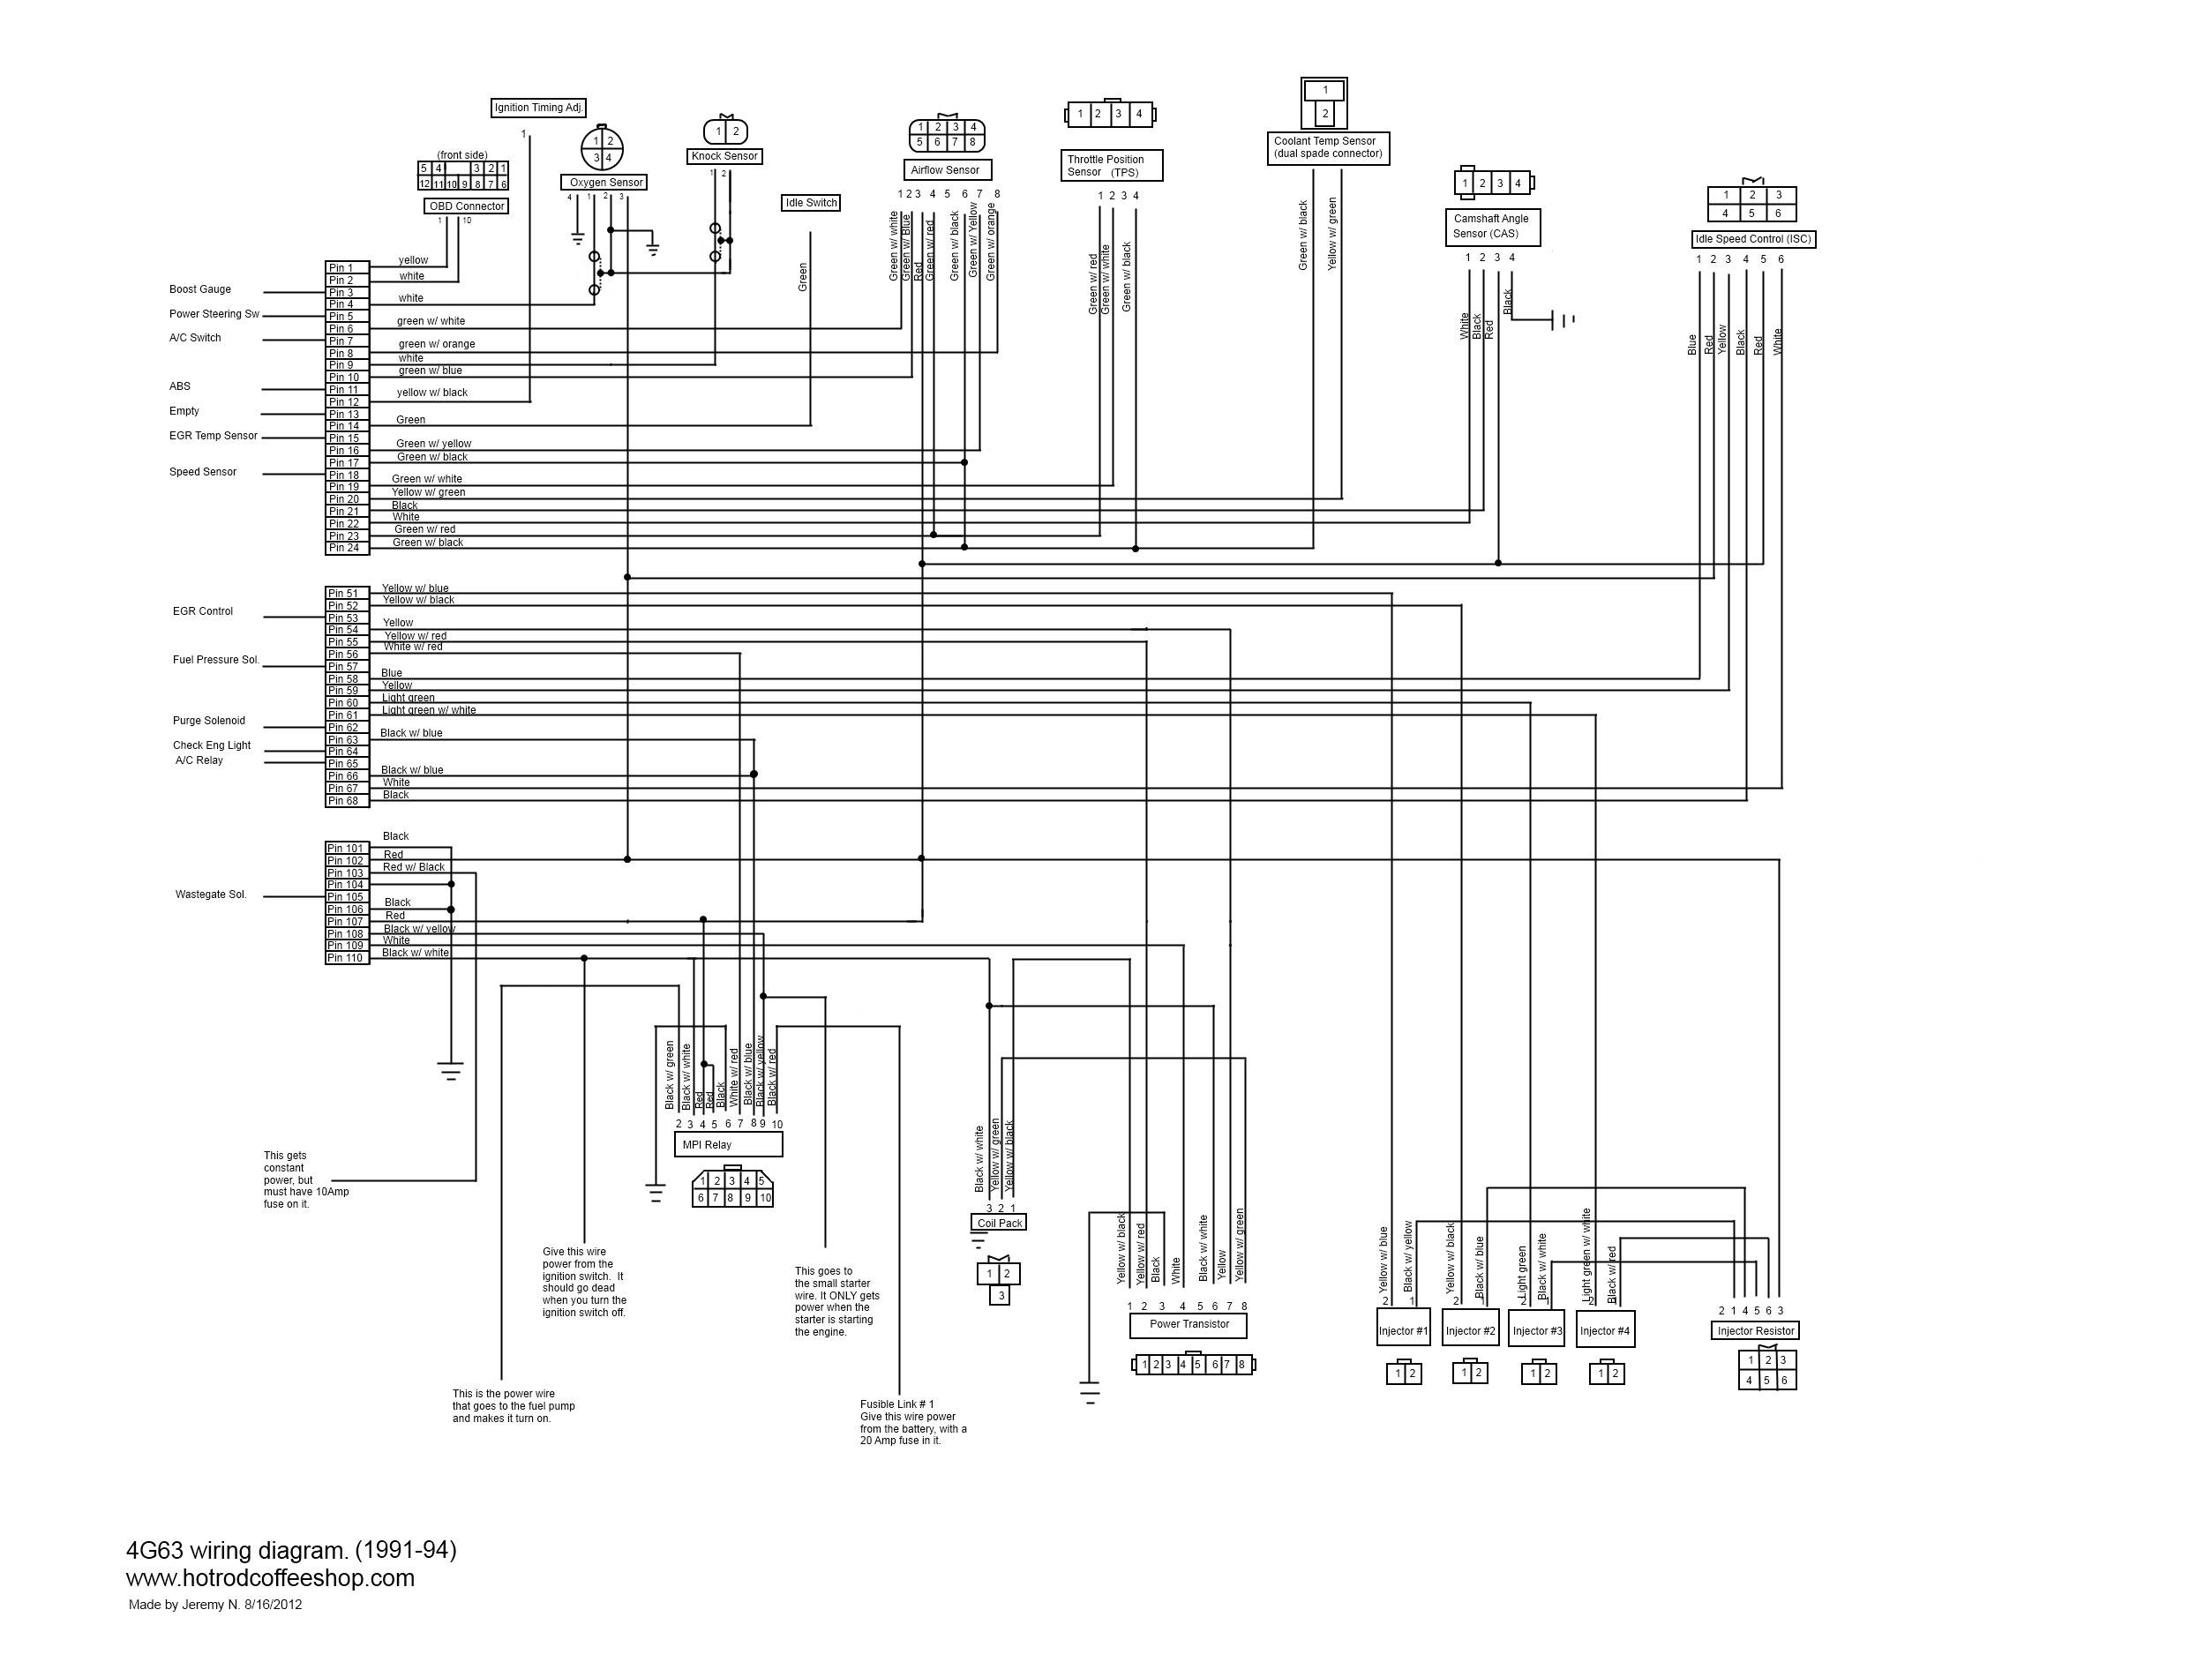 I Made A 4g63 Turbo Wiring Diagram To Help People With Engine Swaps Autoelectrical